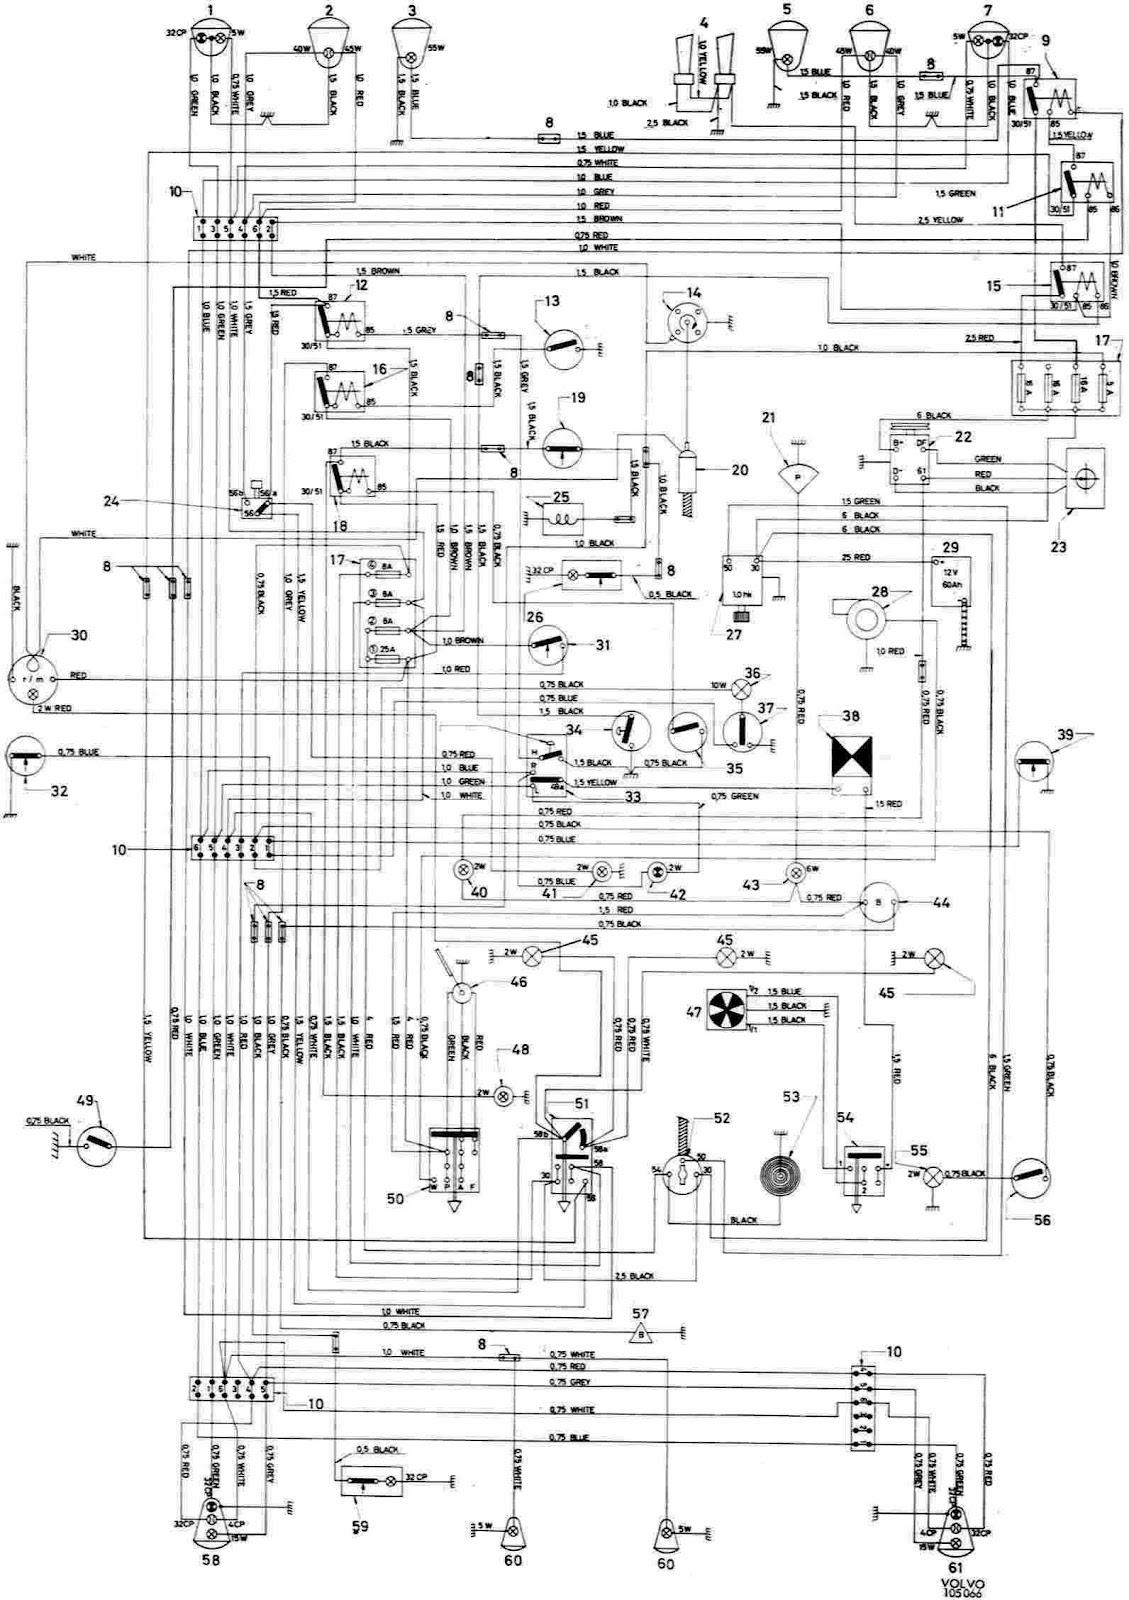 Volvo+123+GT+Complete+Wiring+Diagram 2005 volvo s40 wiring diagram volvo s40 steering diagram \u2022 wiring 2004 volvo xc90 wiring diagrams at virtualis.co